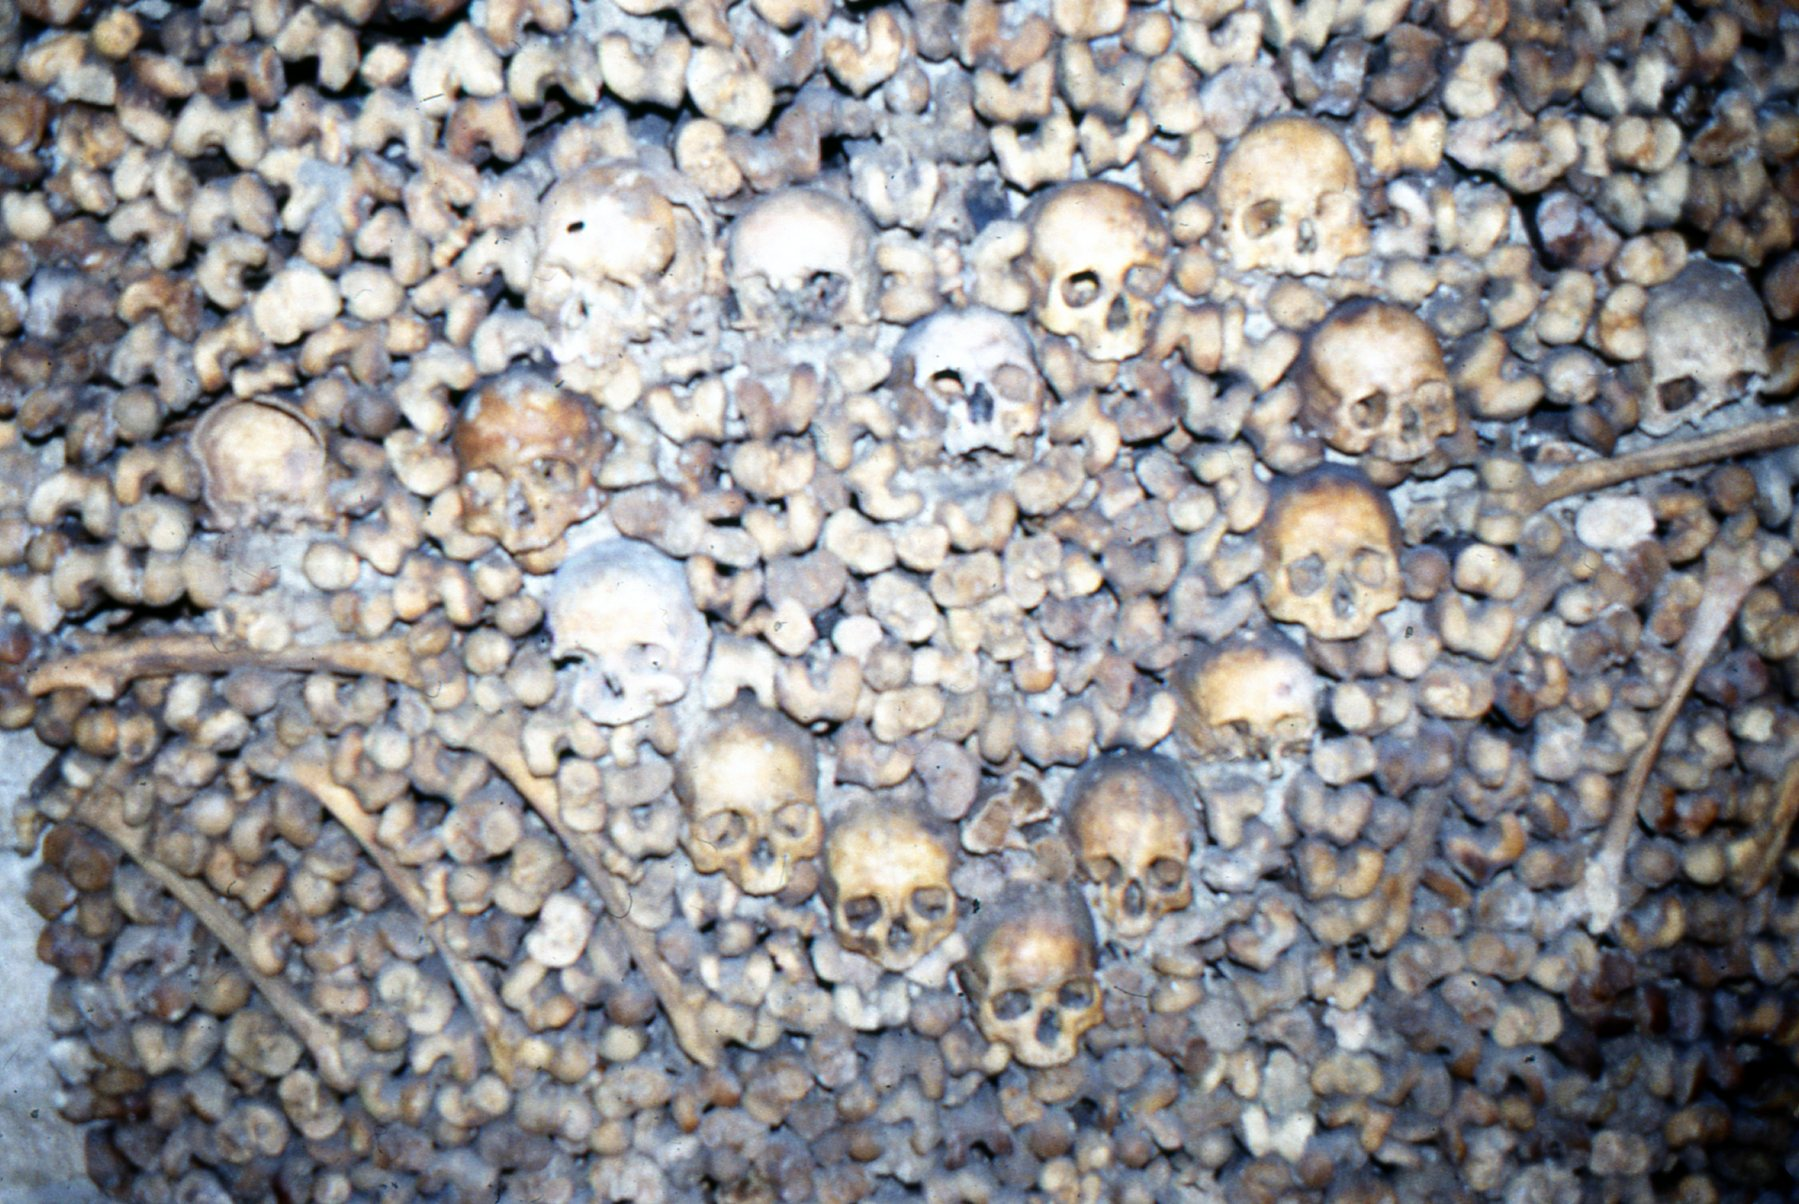 The bizarreness of this Parisian ossuary is heightened by the careful patterning of bone and skull.